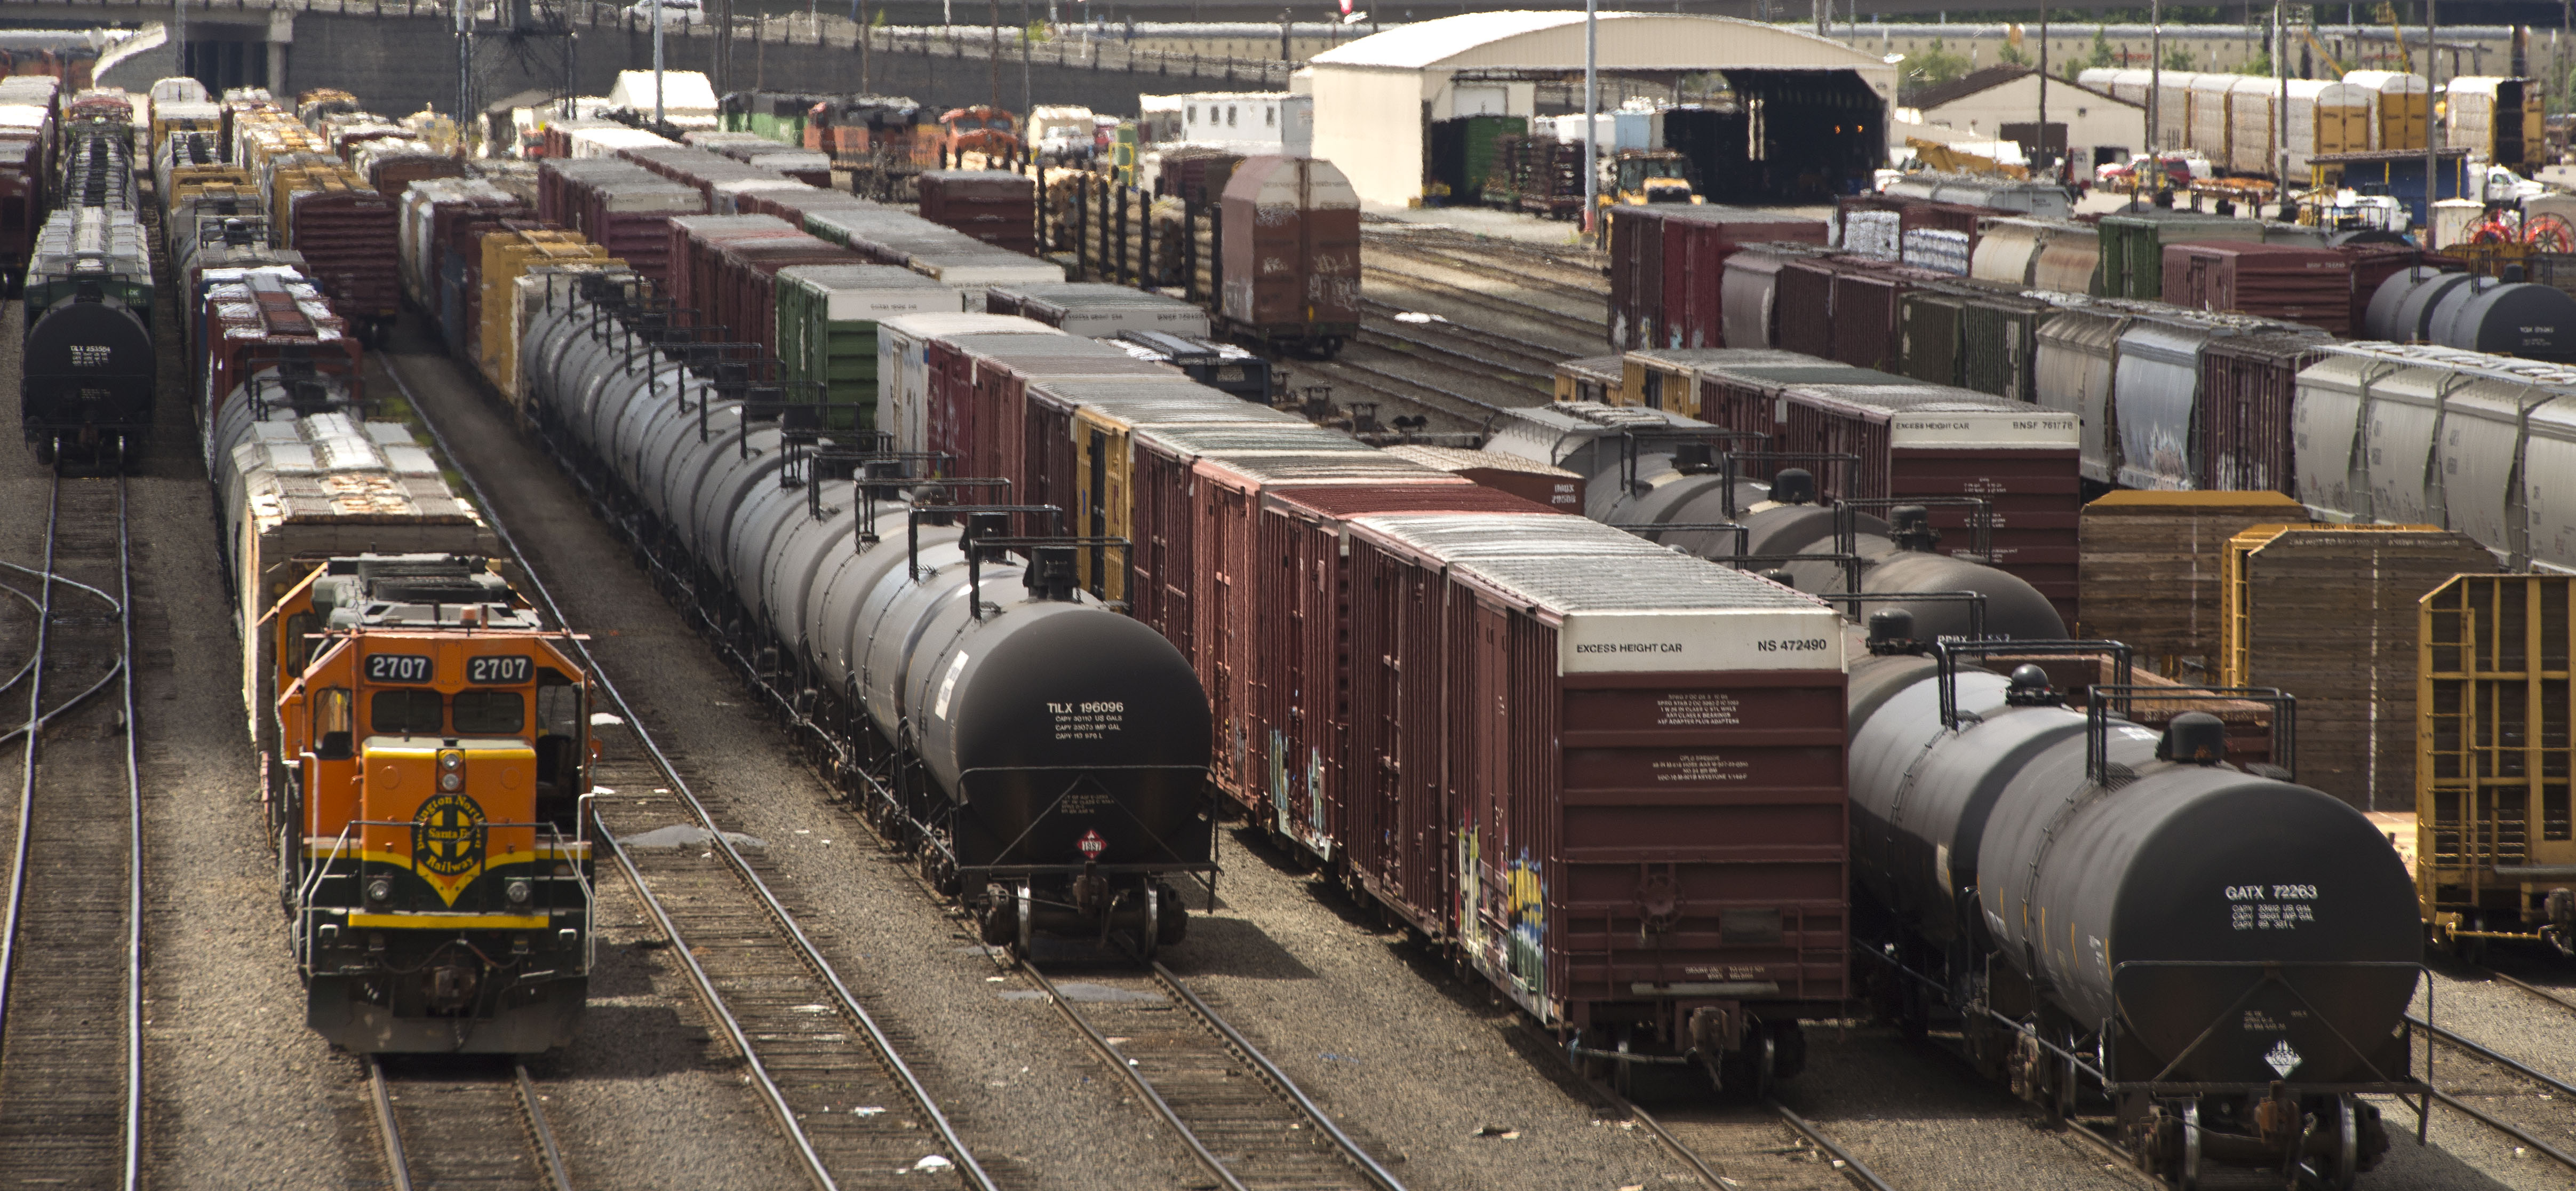 Oil, coal trains, concerns likely to increase | The Spokesman-Review